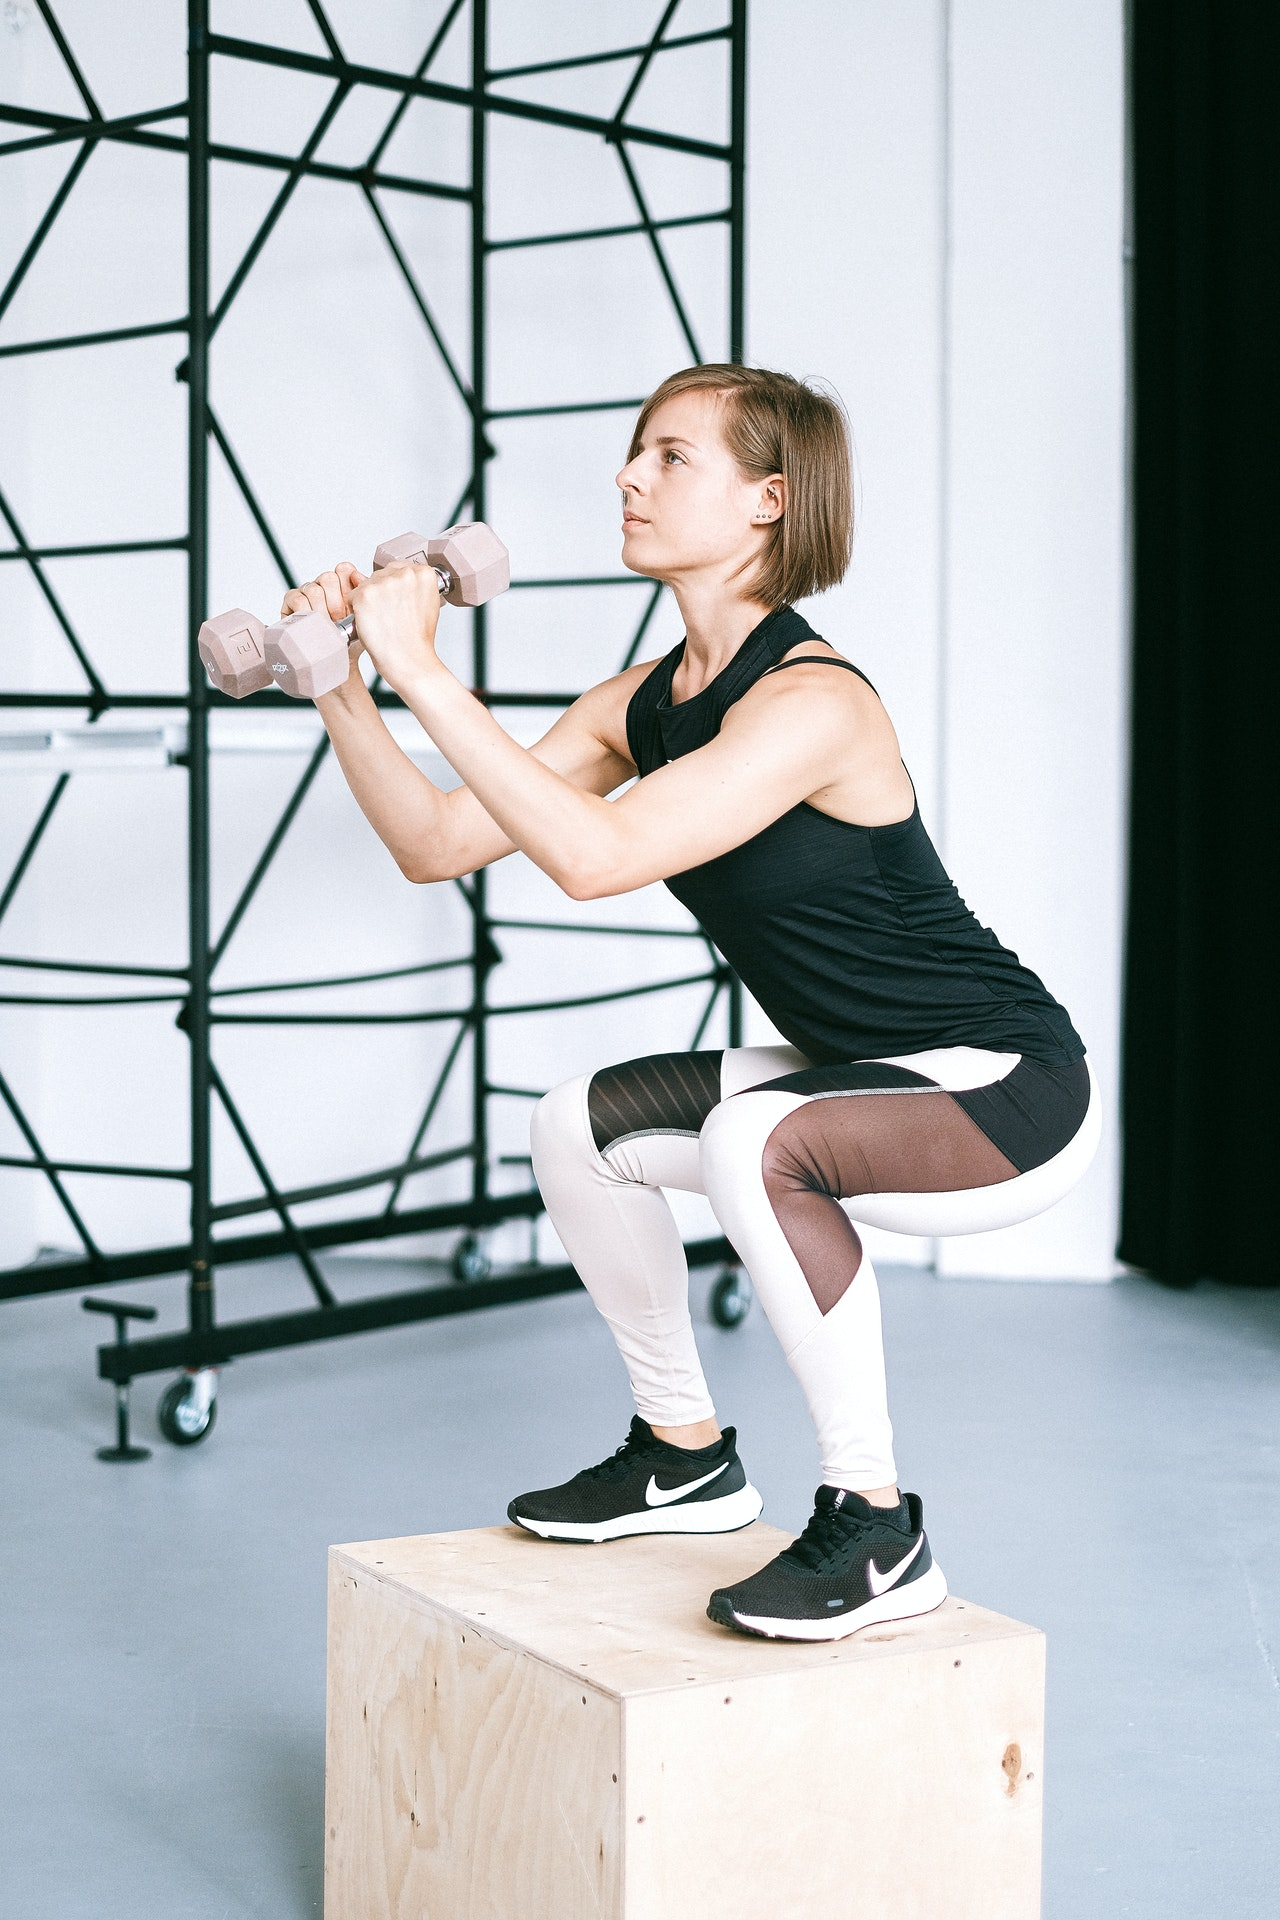 Woman doing squats on a box